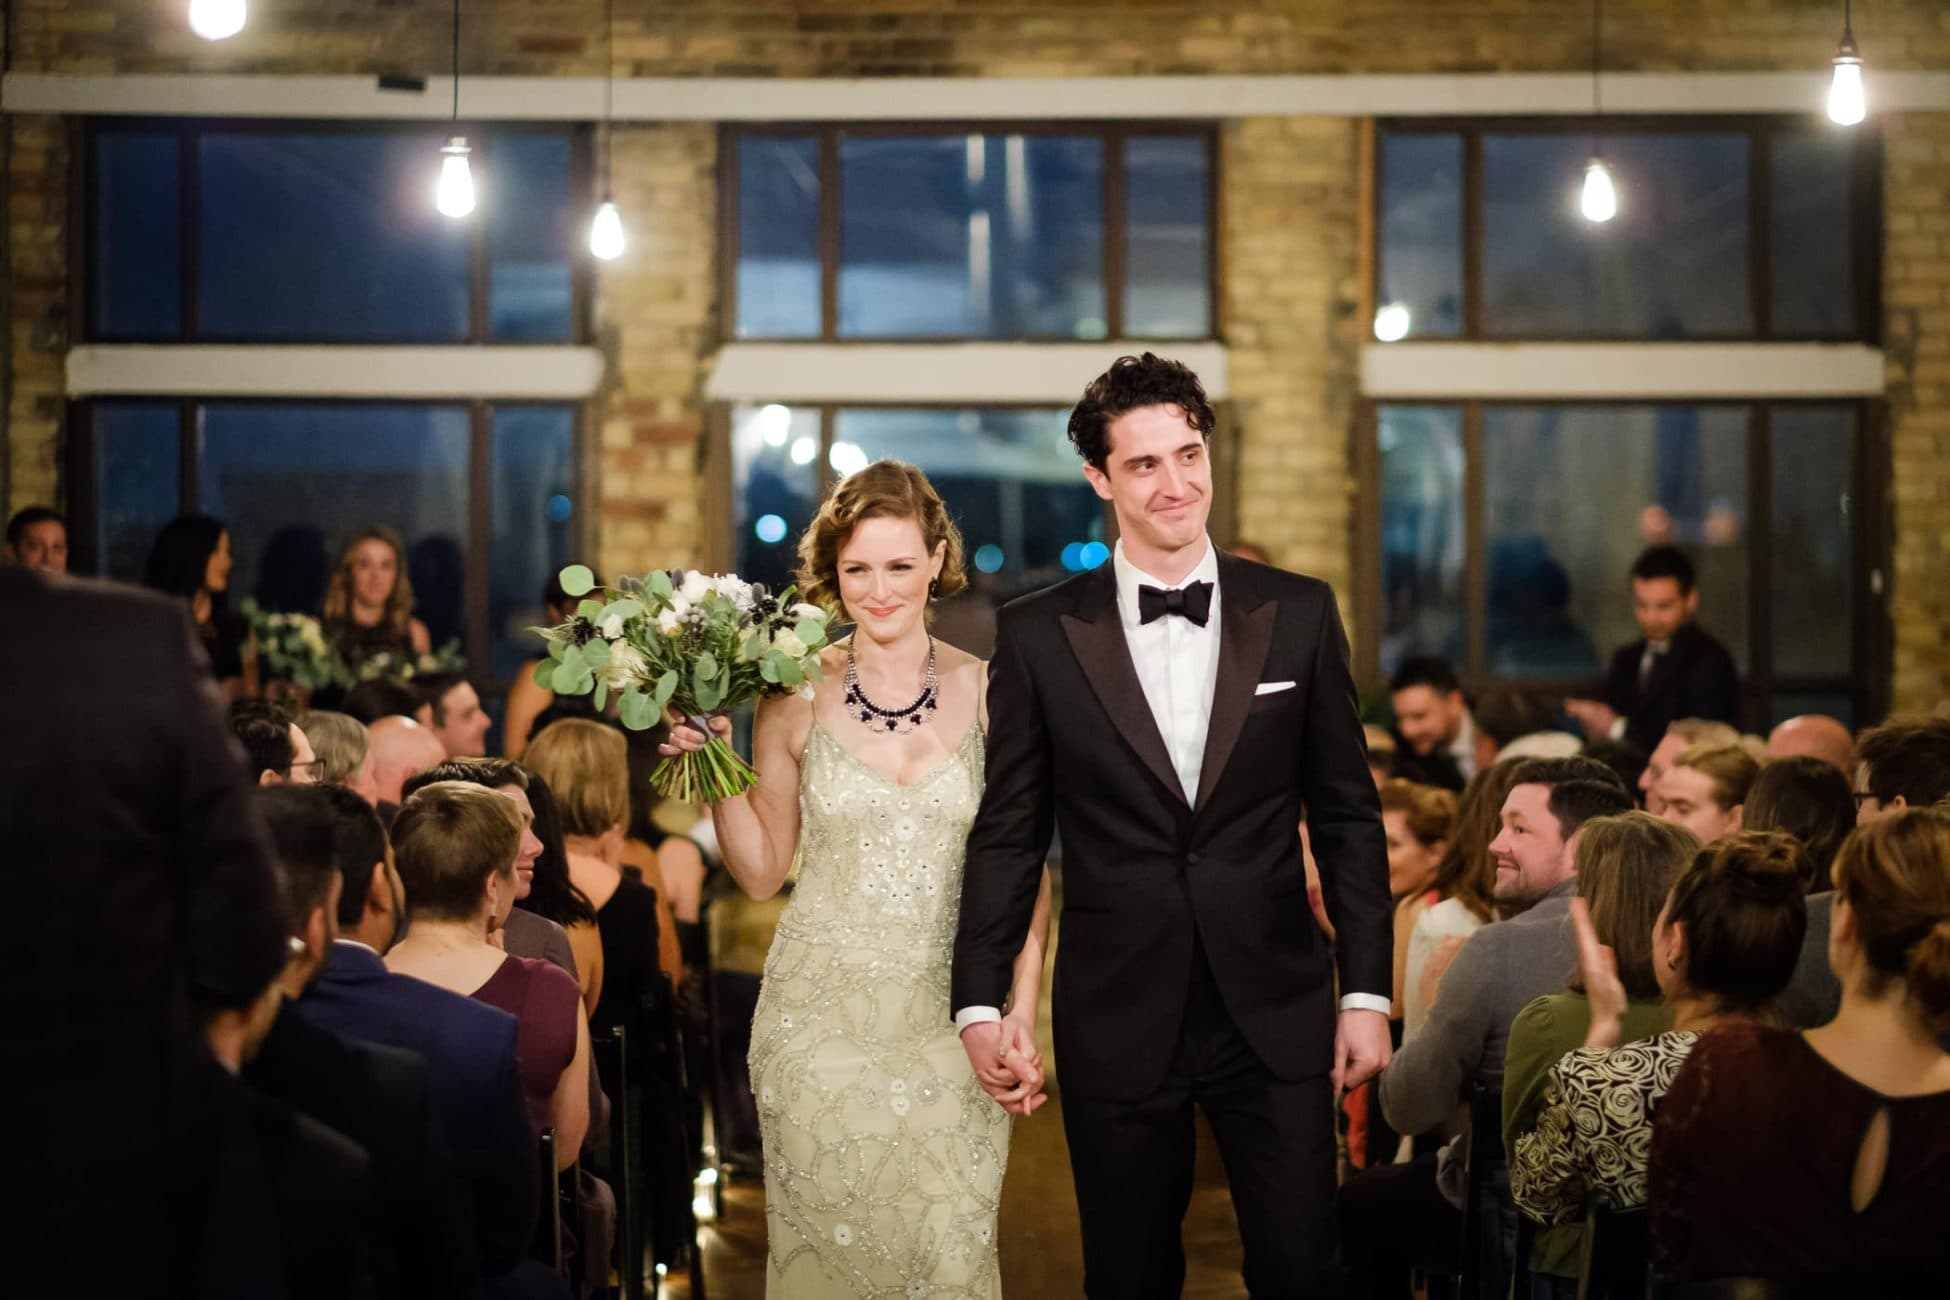 After getting married, the bride and groom walk down aisle at The Burroughes Building.